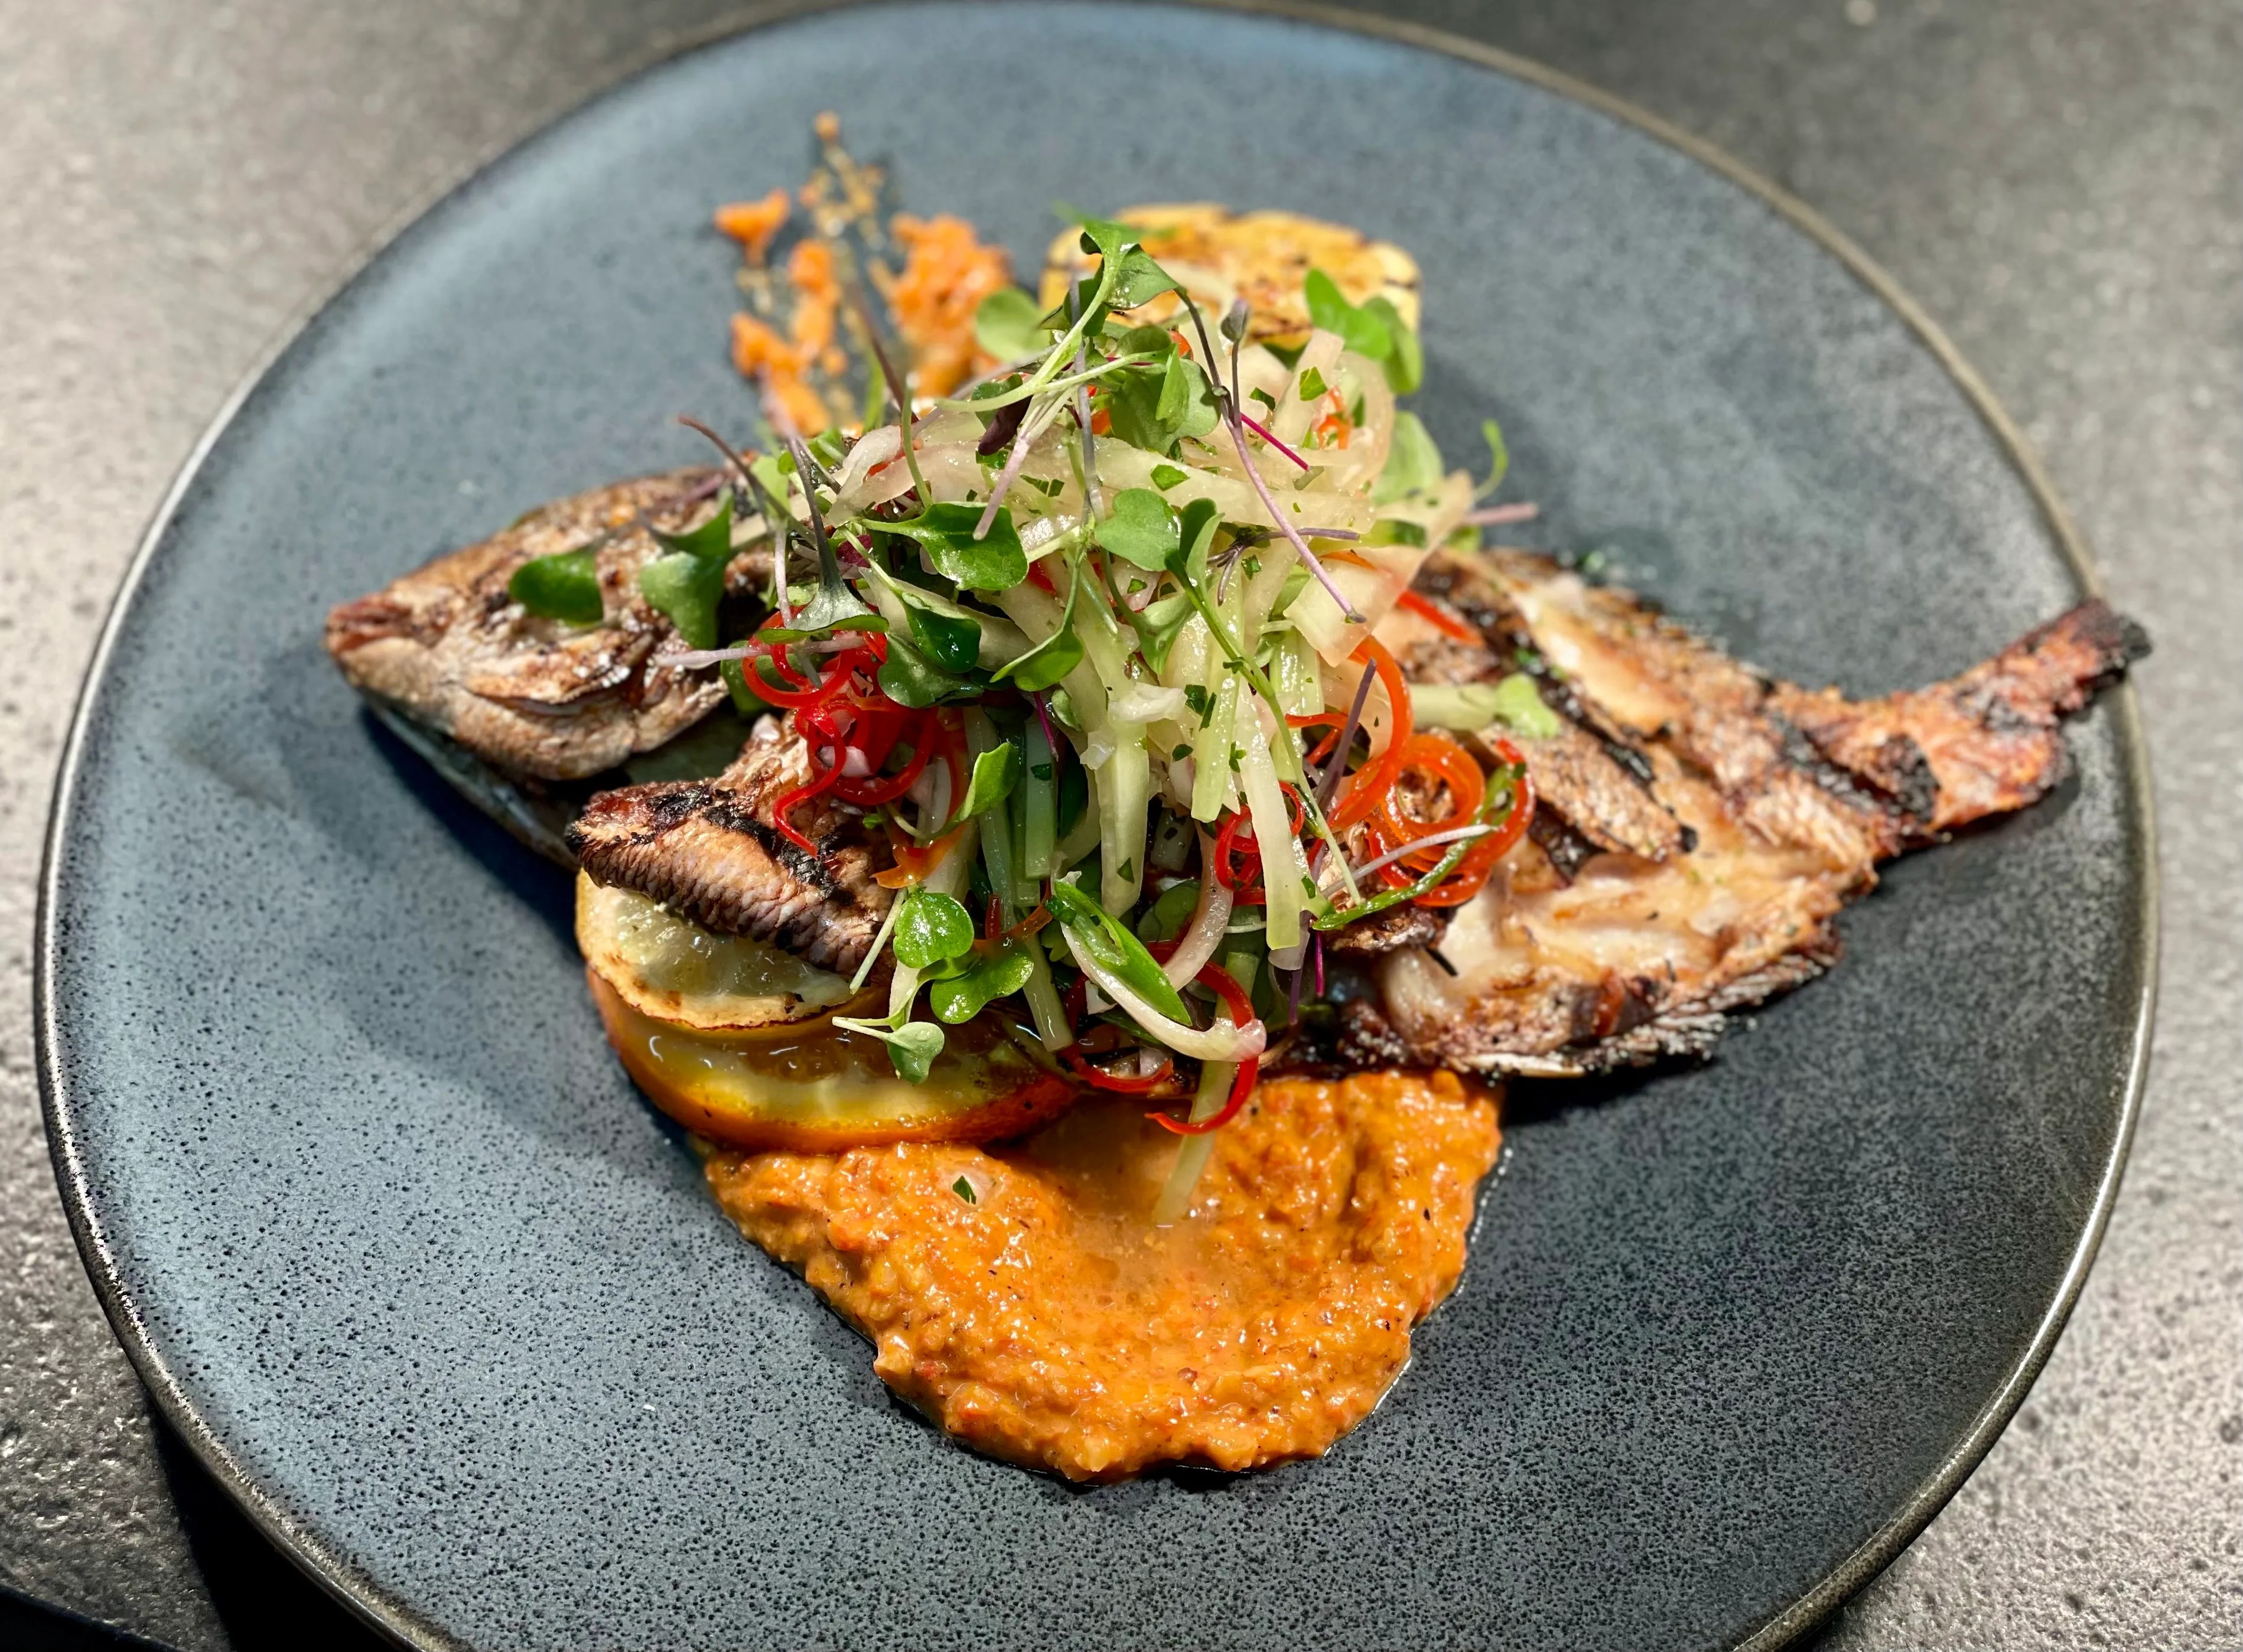 Core 450's whole grilled fish is chargrilled and stuffed with herbs and citrus and topped with a watermelon rind salad.